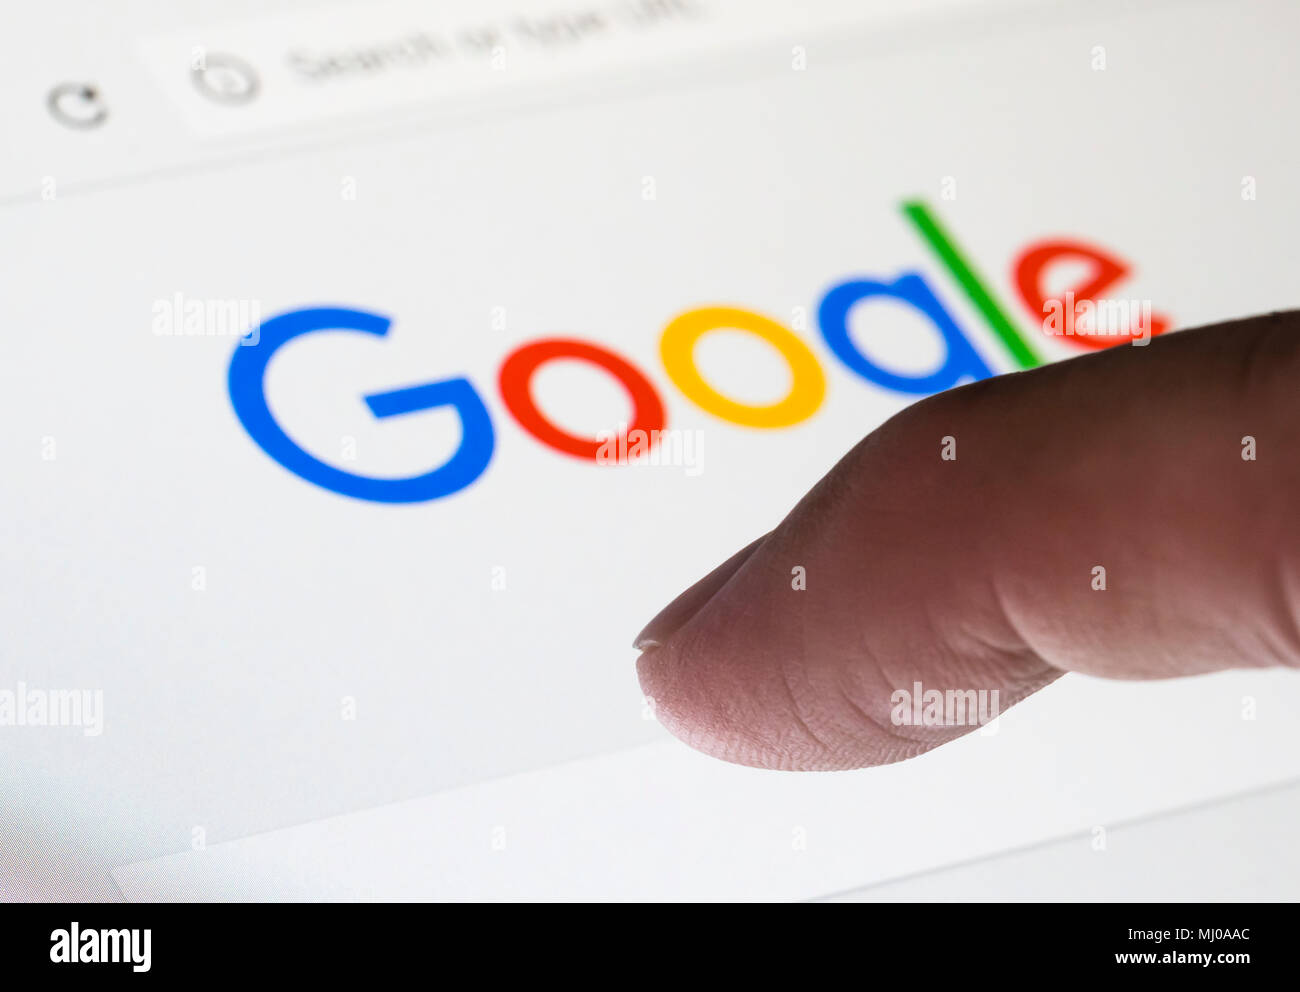 Finger about to type a search on the Google Internet search engine website. - Stock Image